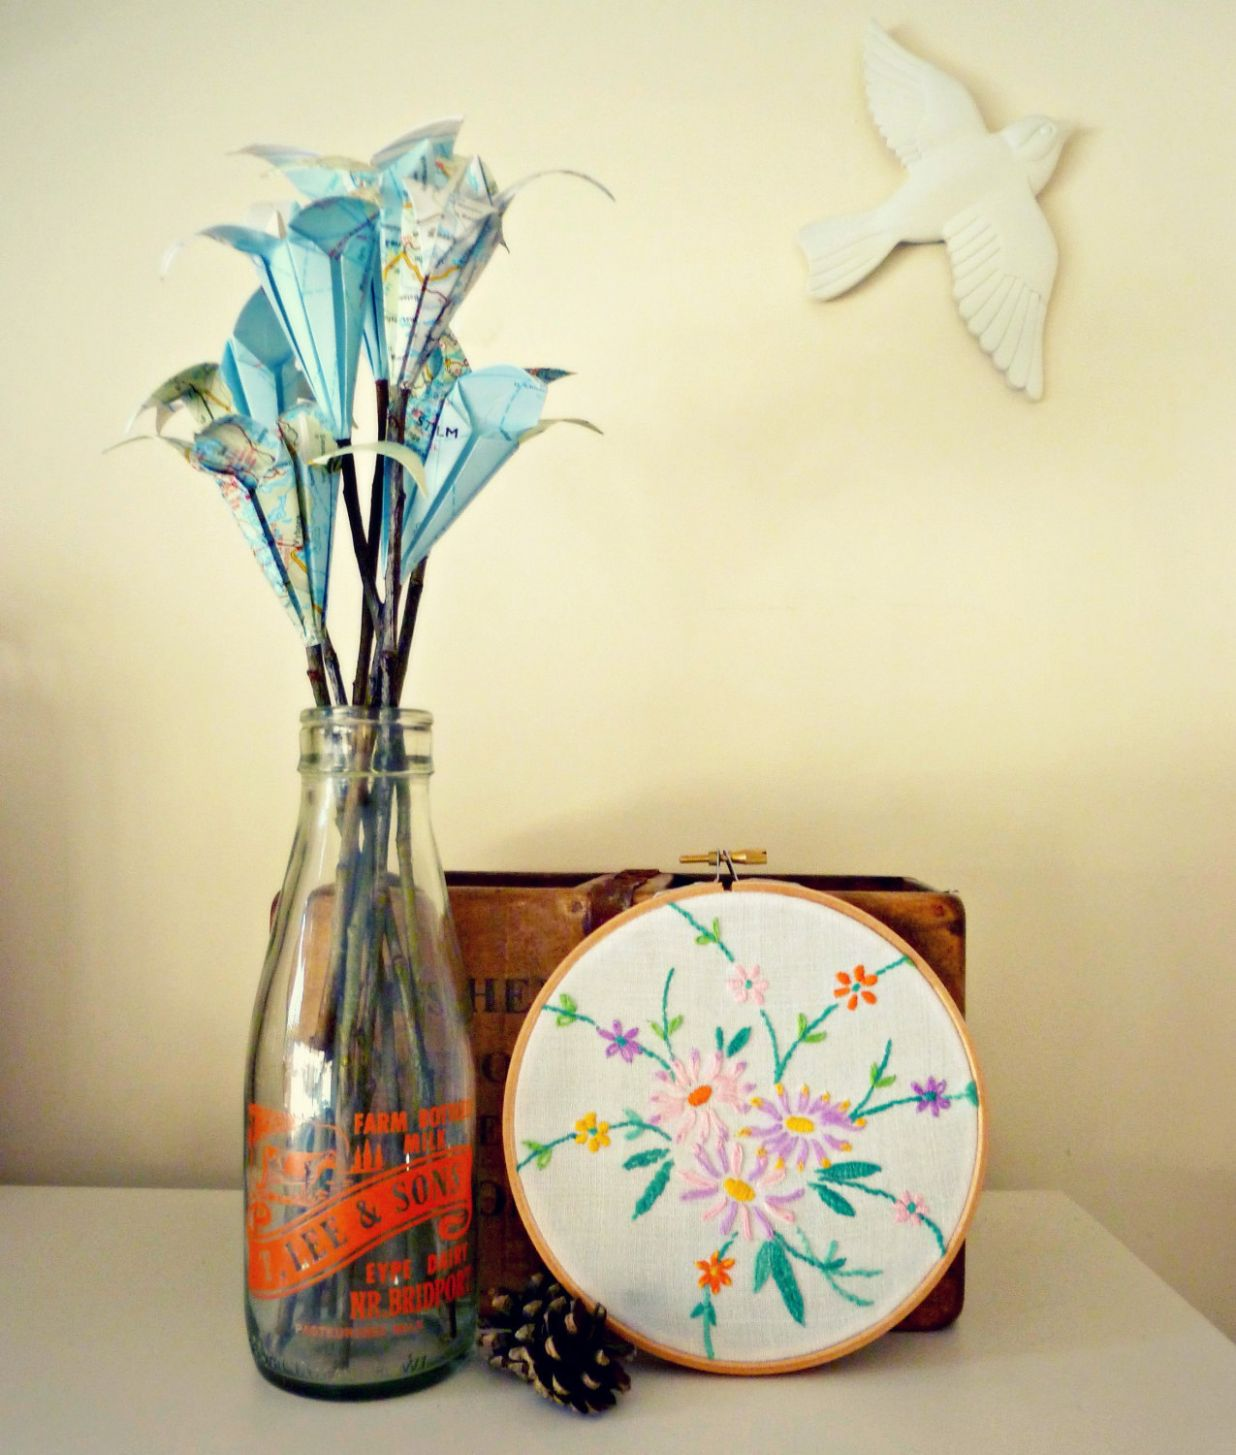 How To Make Home Decoration Things - Images Home Collections - diy home decor things